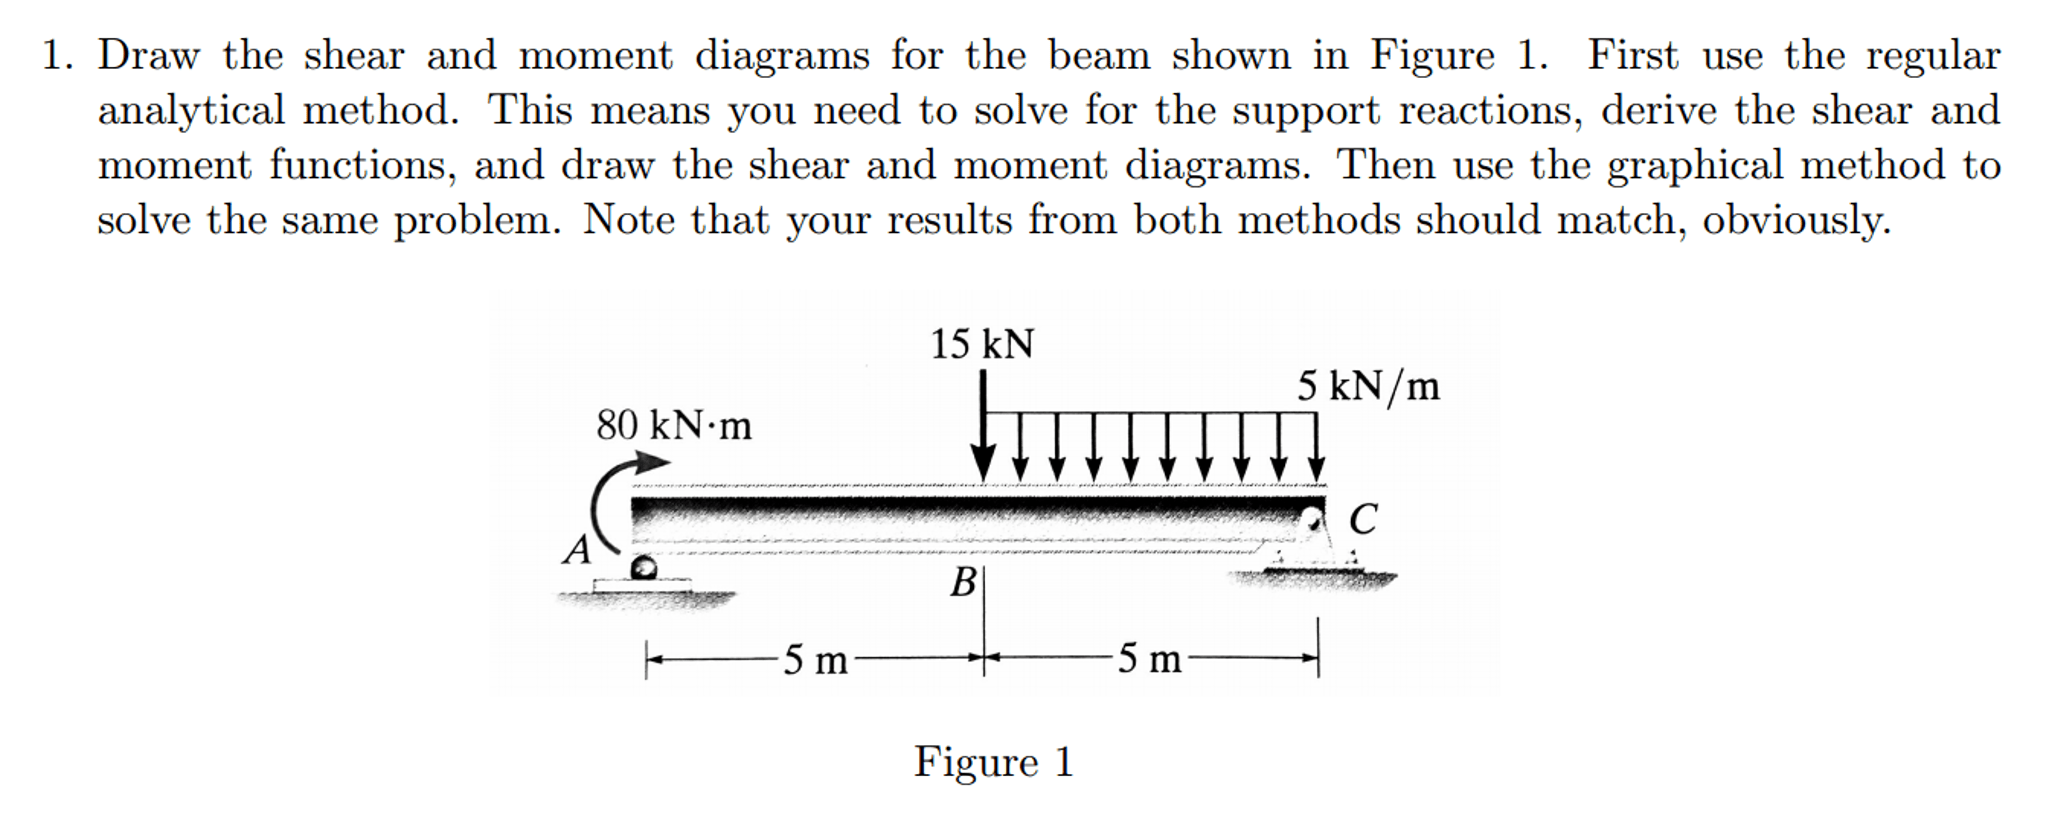 how to draw shear and bending moment diagrams torque transducer wiring diagram solved the for beam sh